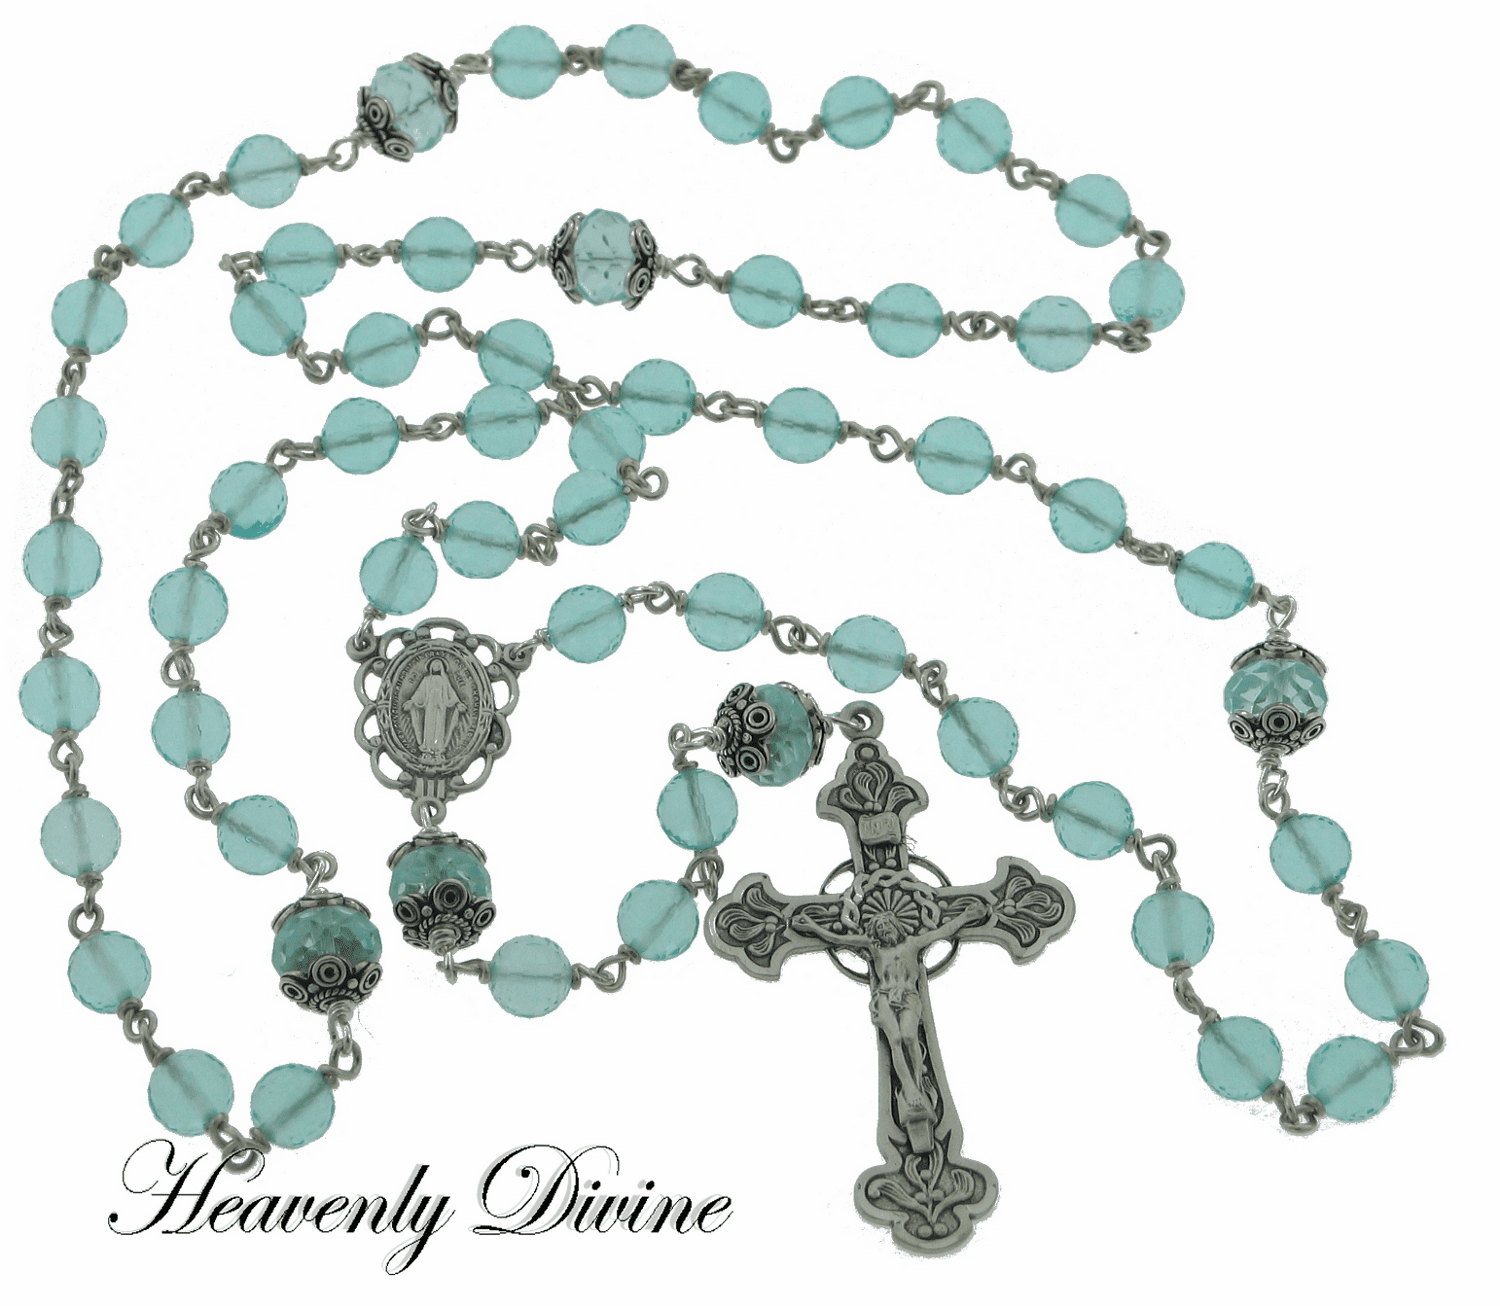 Handmade Aqua Blue Faceted Quartz Sterling Silver Wire Wrapped Rosary by Heavenly Divine